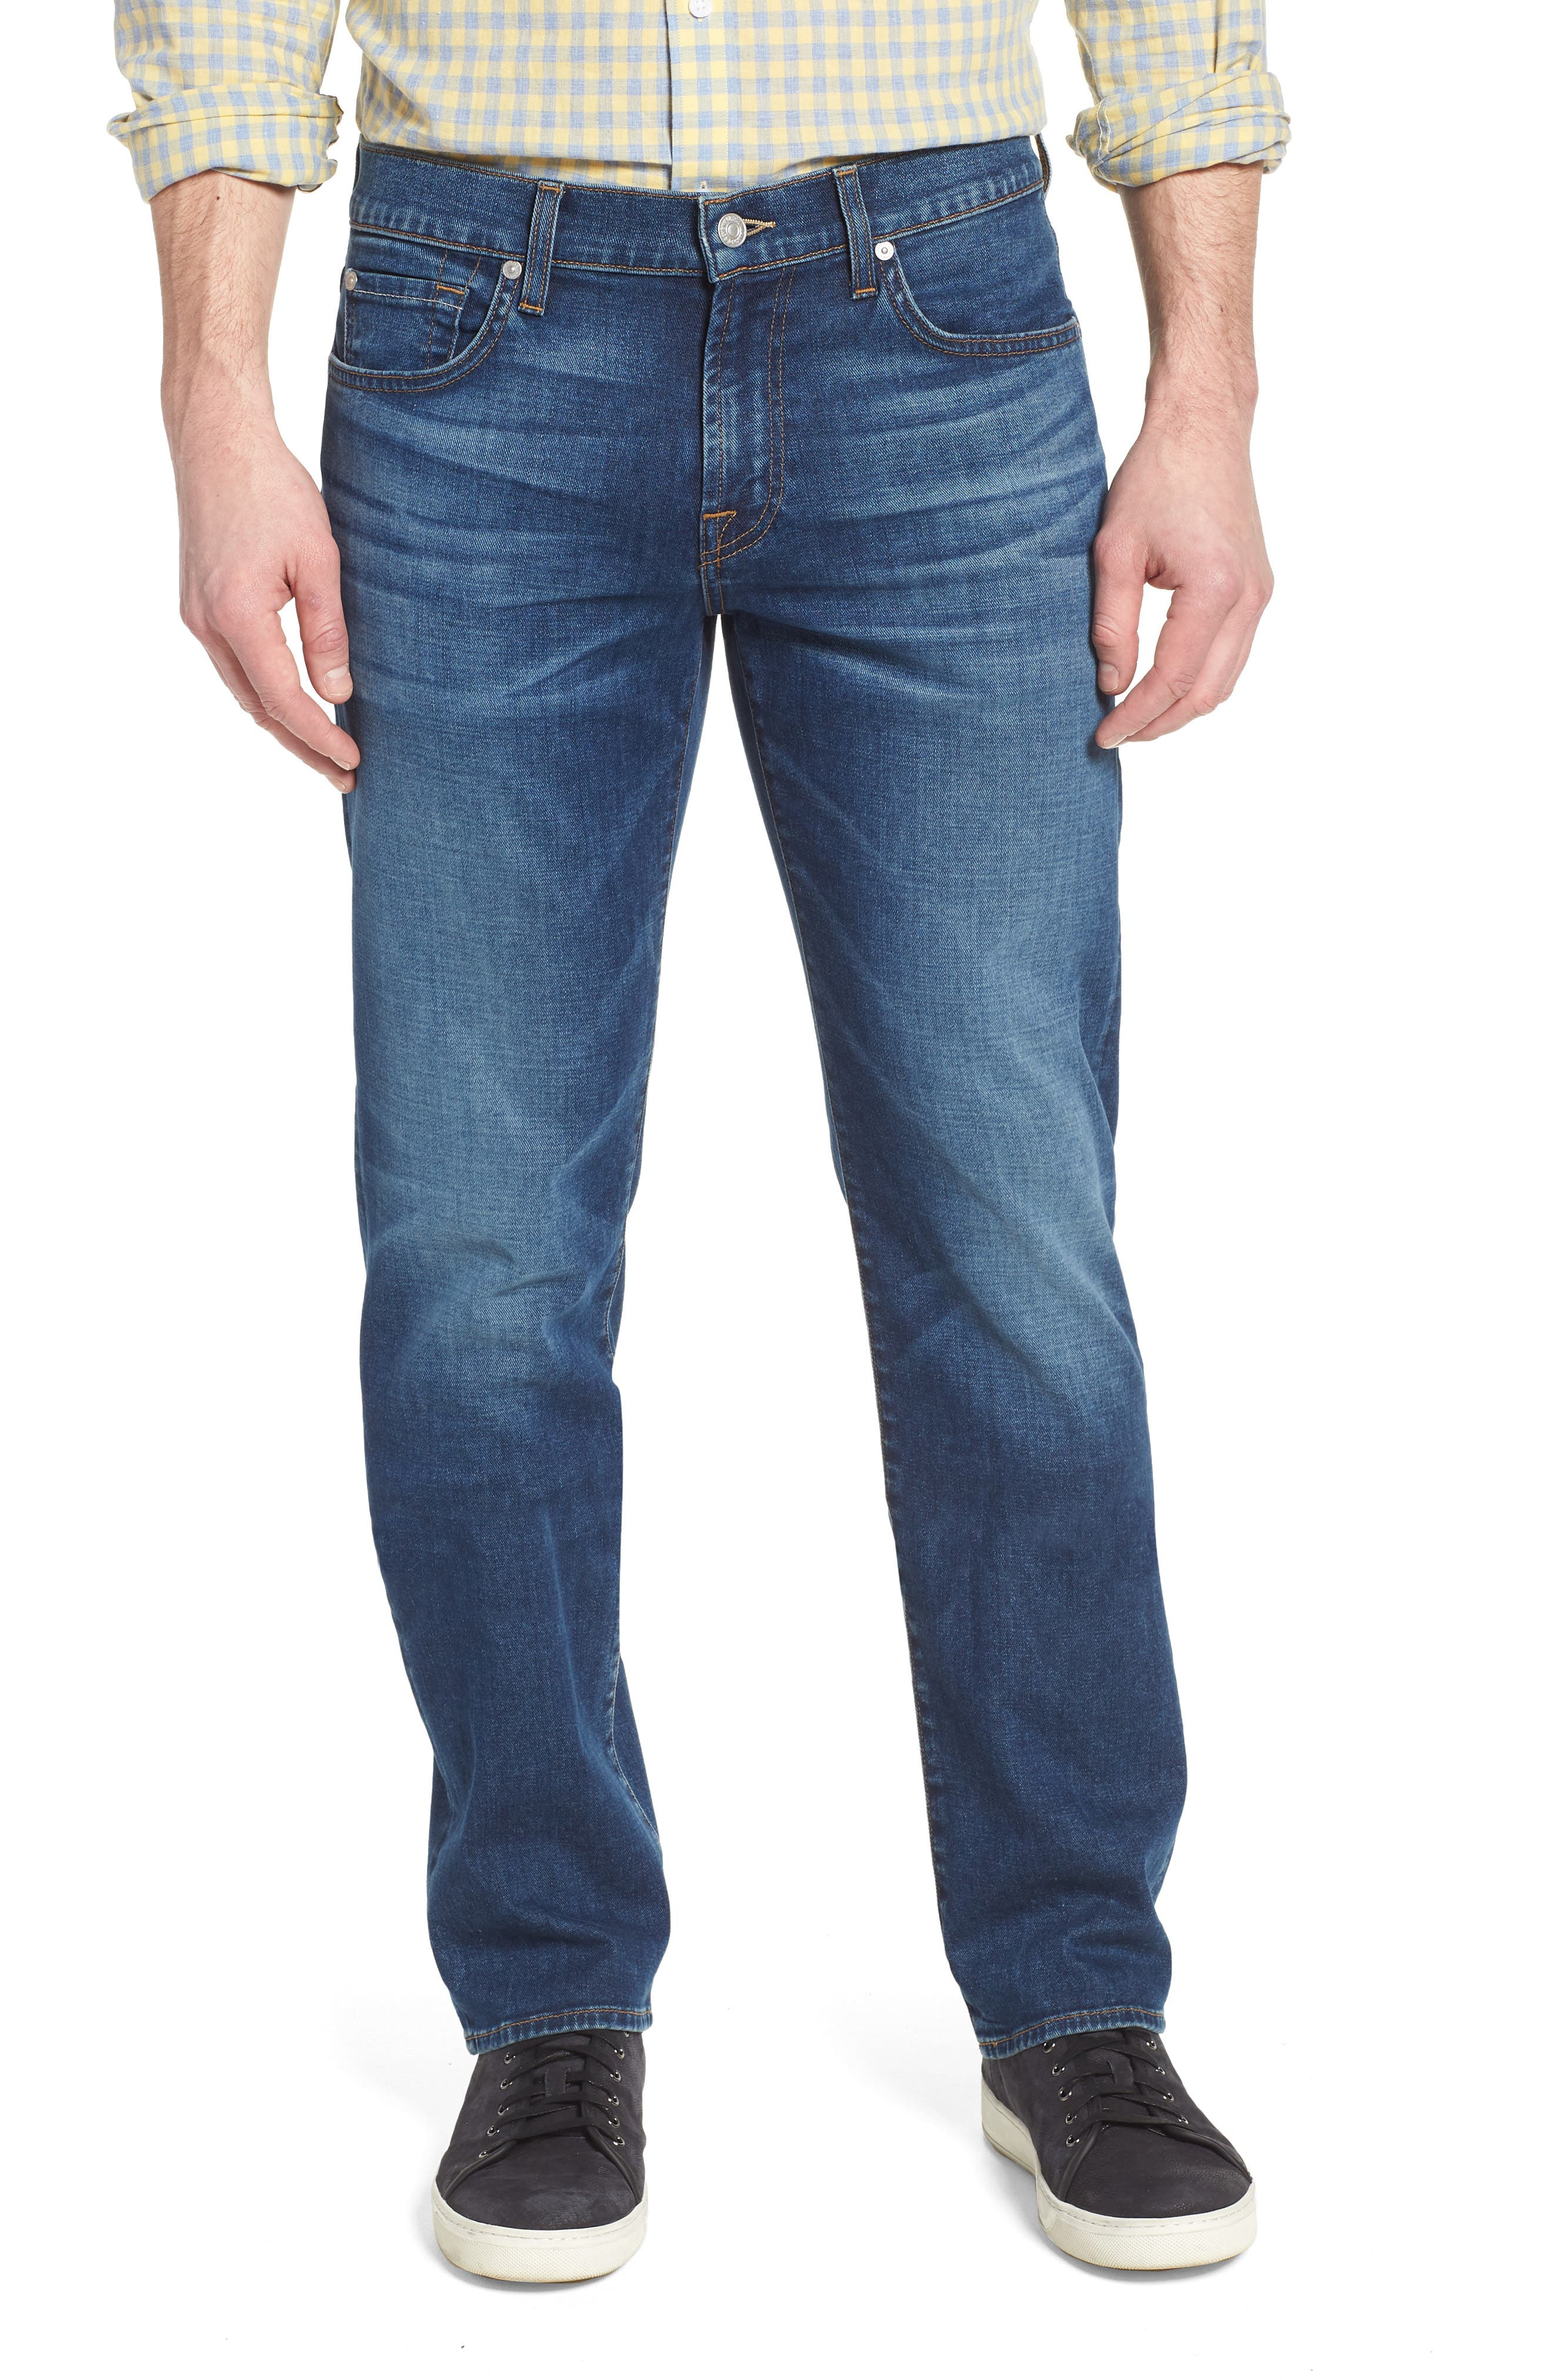 Standard Straight Leg Jeans,                         Main,                         color, Ryn